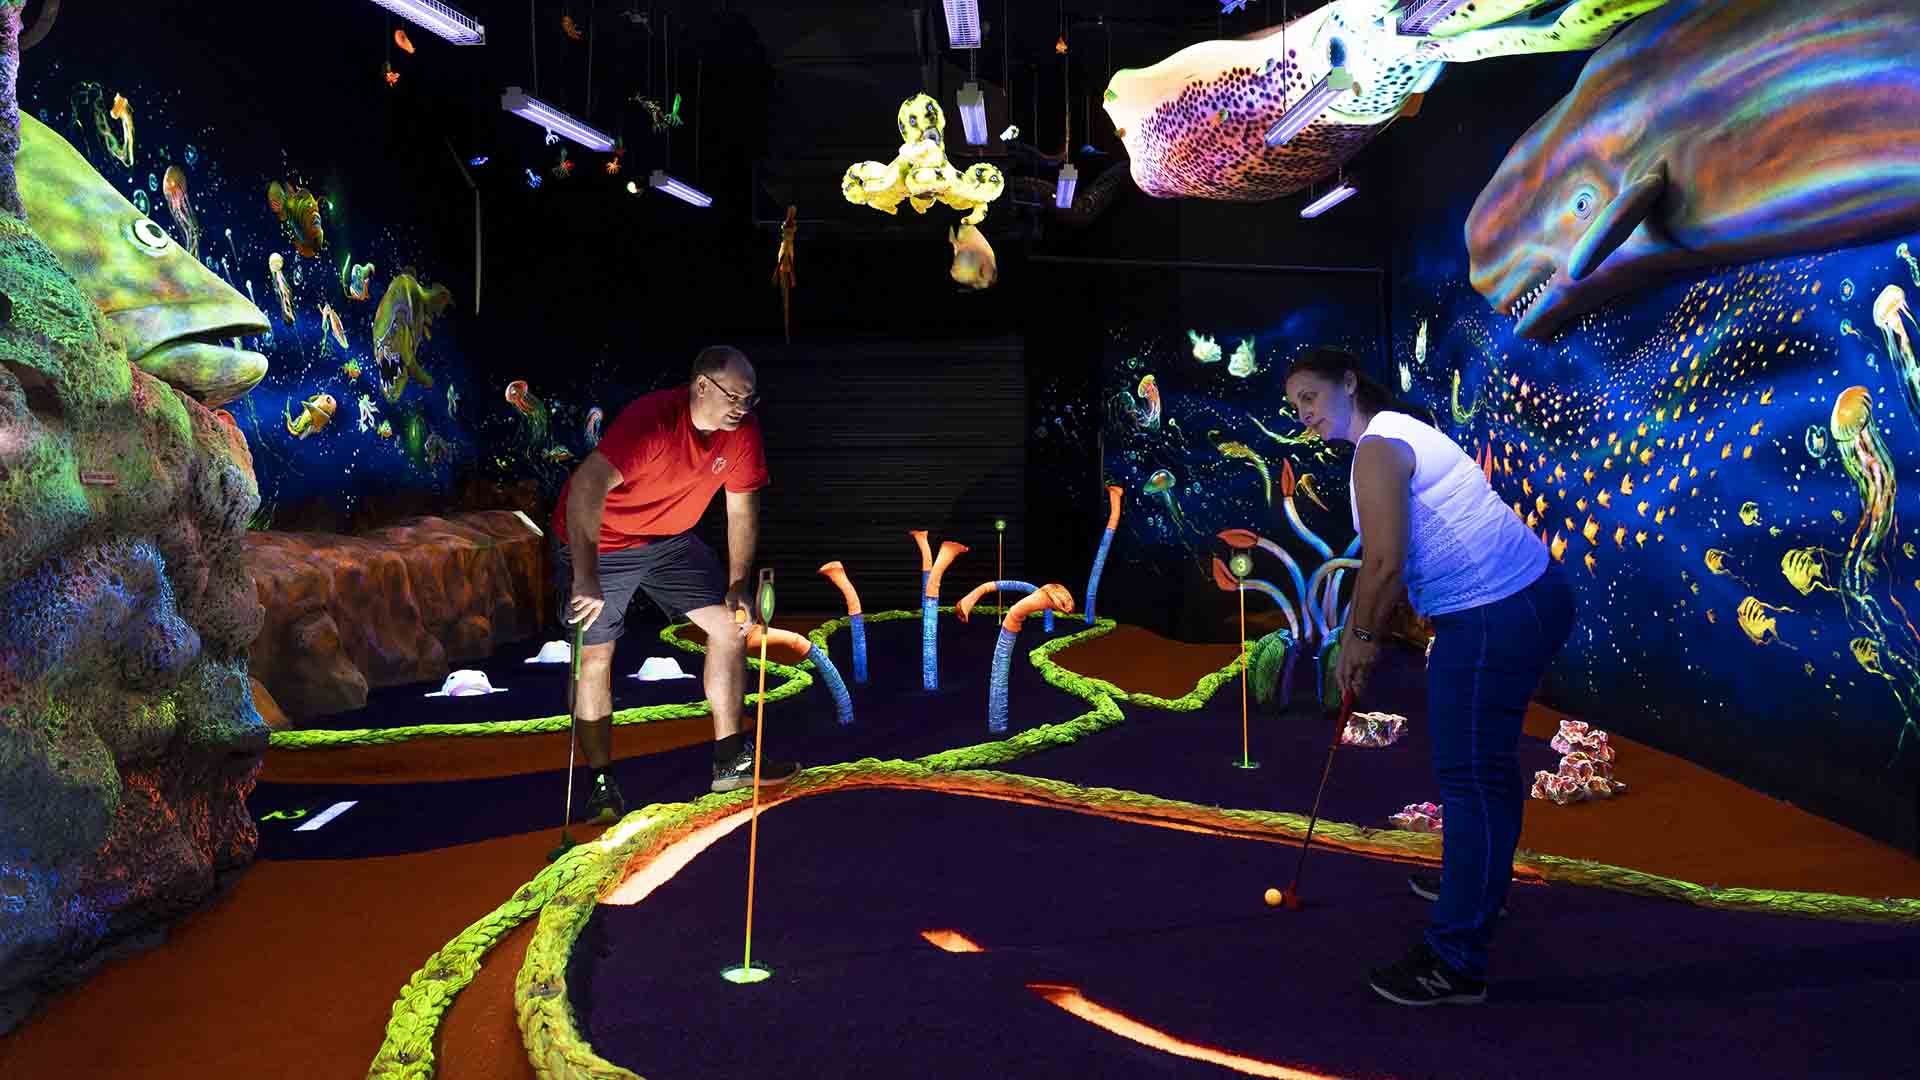 Undersea Putt & Play Is Redcliffe's New Underwater-Themed 18-Hole Mini Golf Course